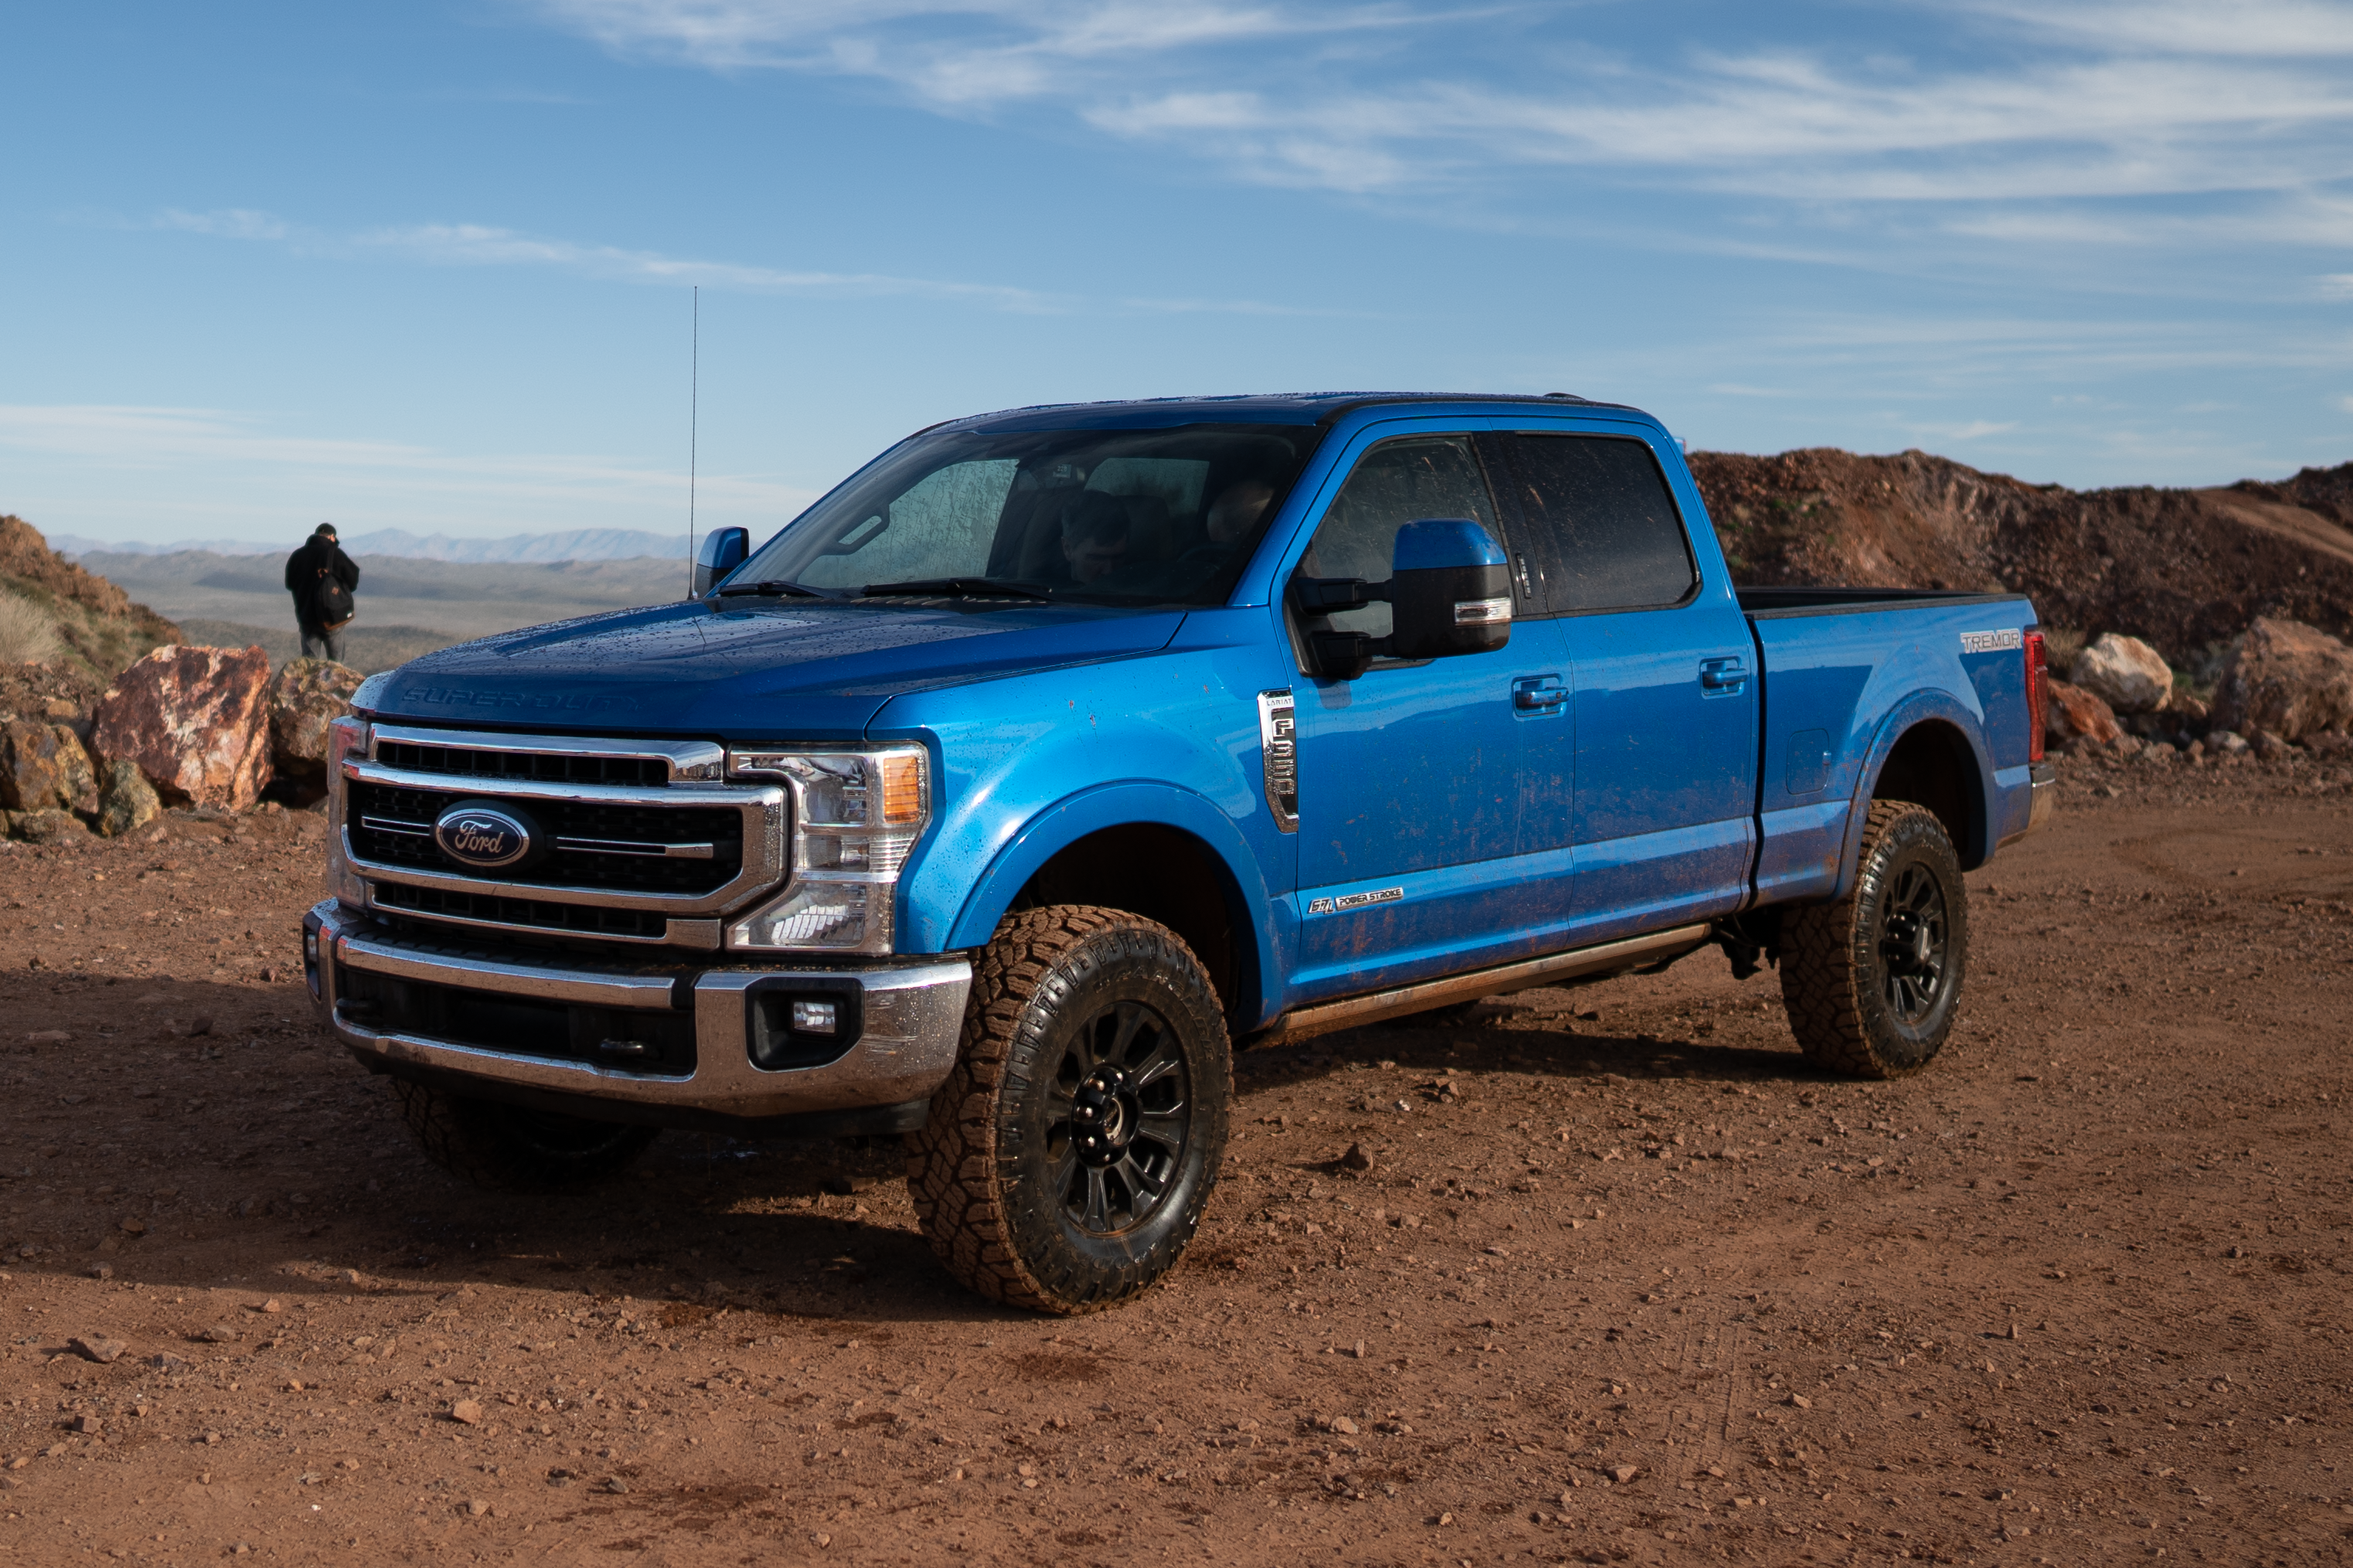 ford-f-series-super-duty-2020-05168.png